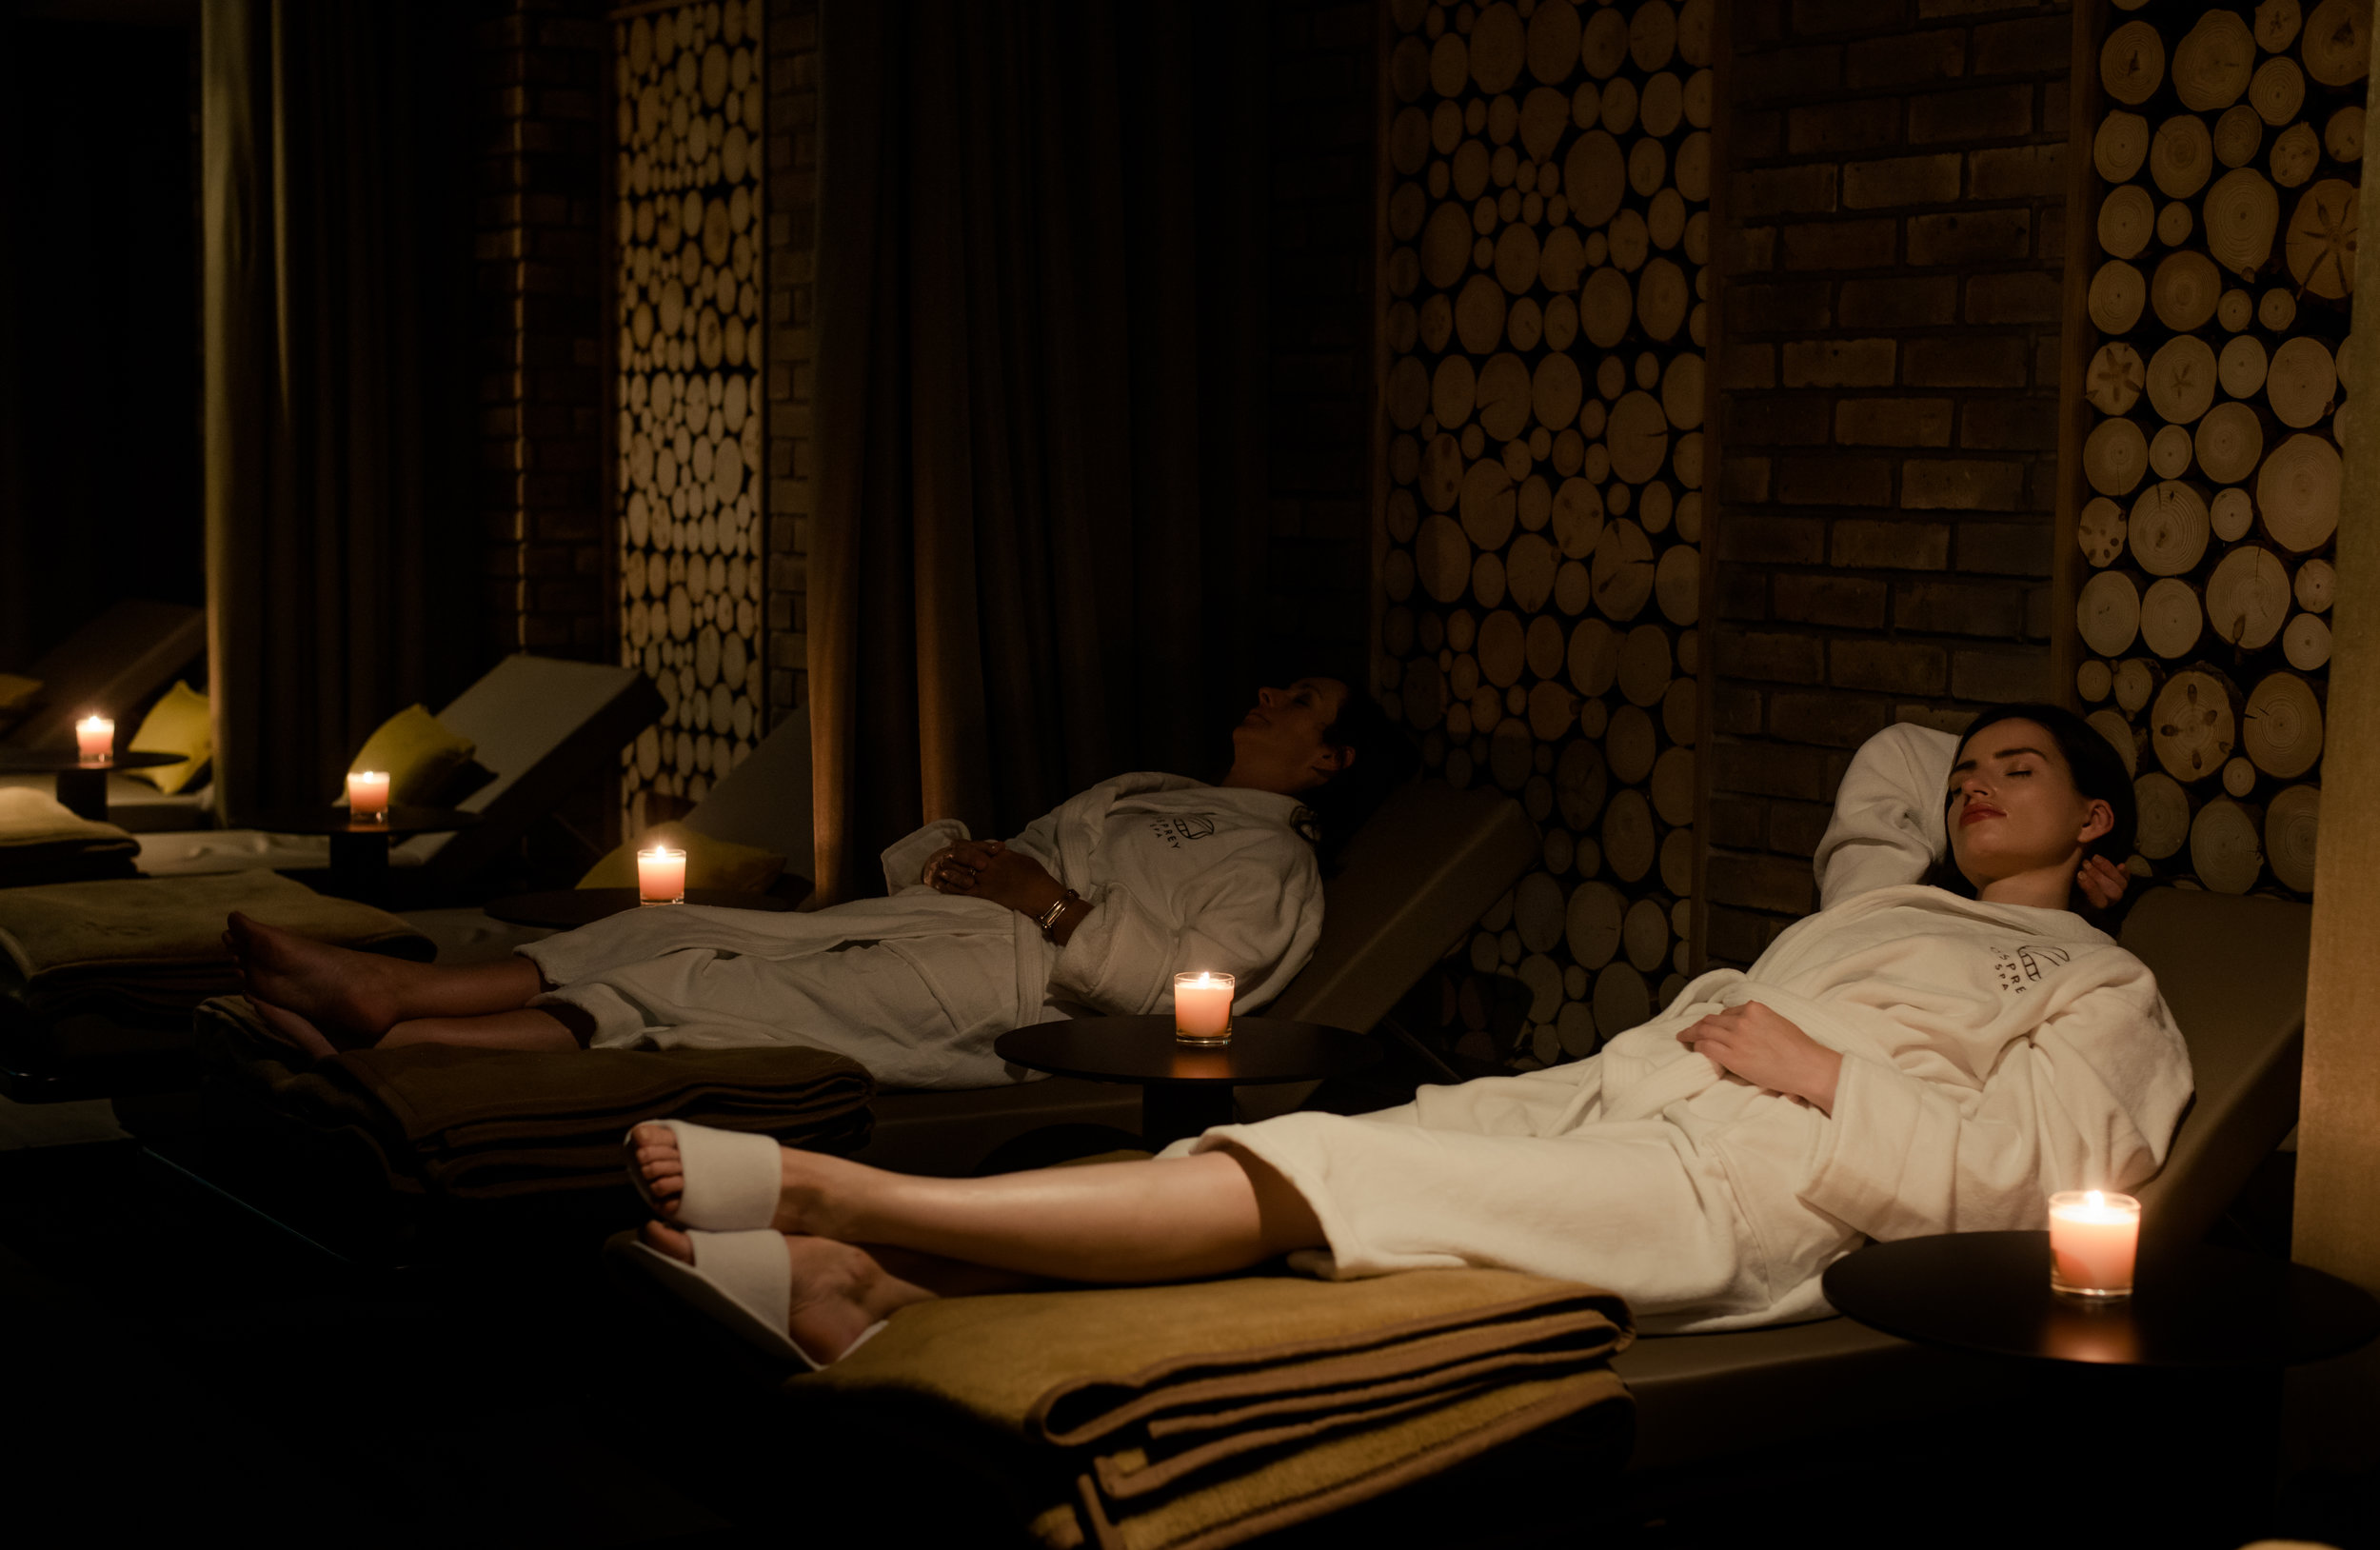 Osprey Leisure & Fitness. Two women relaxing in the Soul Spa in the Osprey Hotel